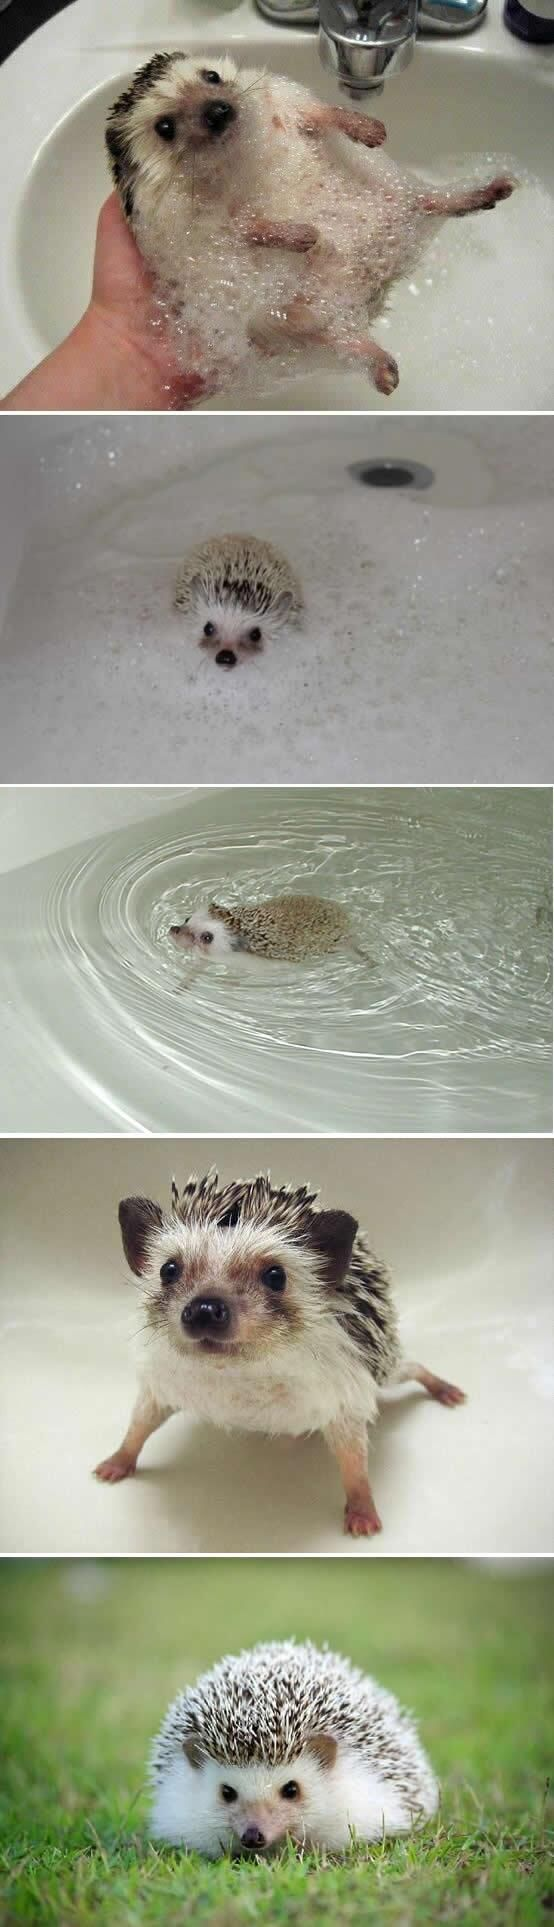 Hedgehogs Are Just Prickly Little Balls Of Cute Cuddlypet Too - Darcy cutest hedgehog ever